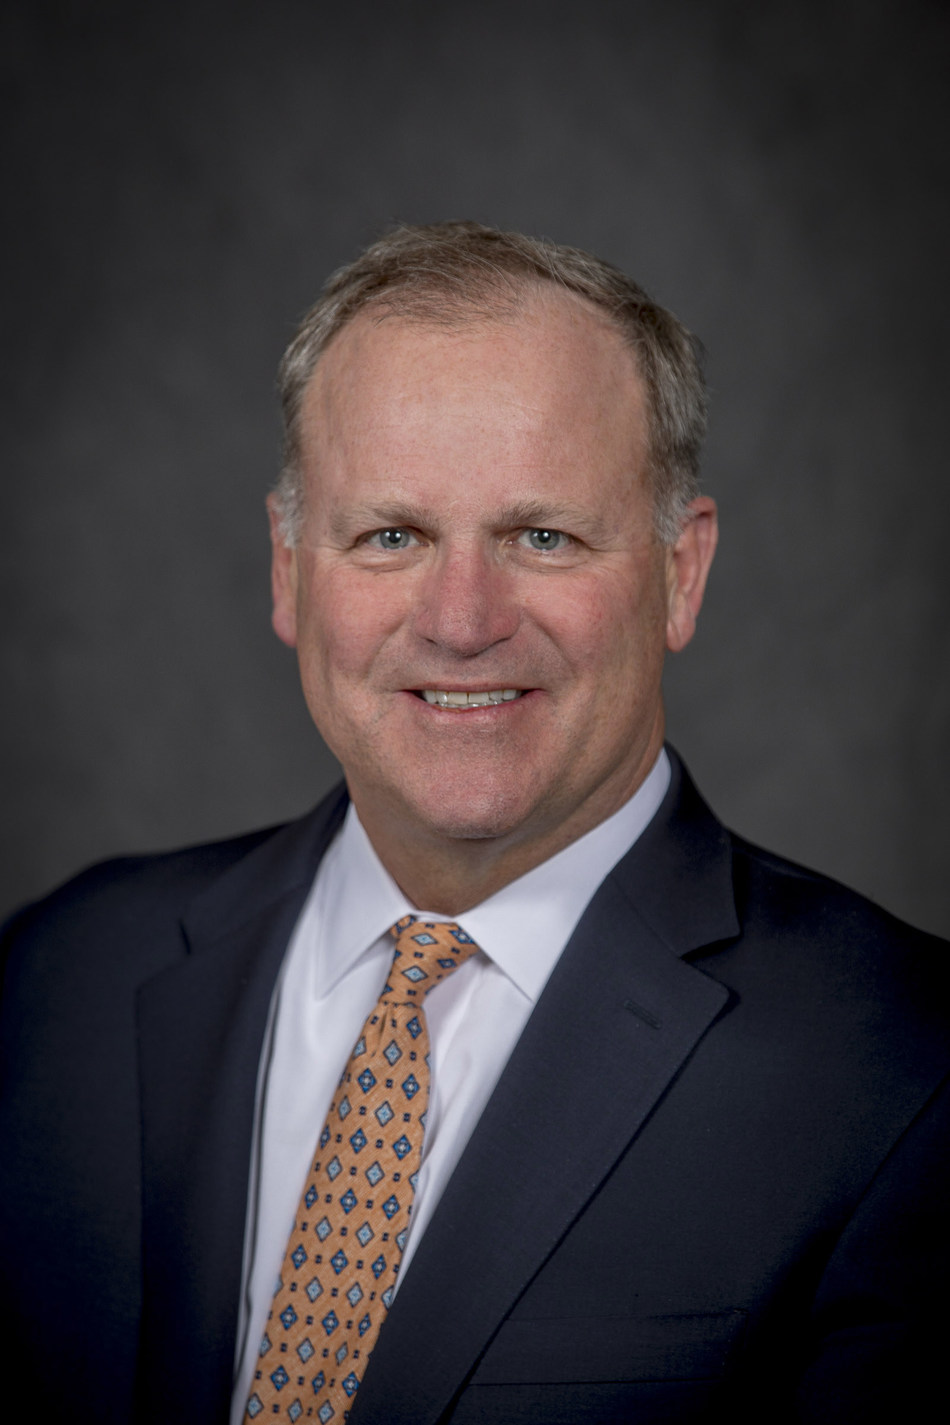 Henry Stoever named president-elect of the Association of Governing Boards of Universities and Colleges